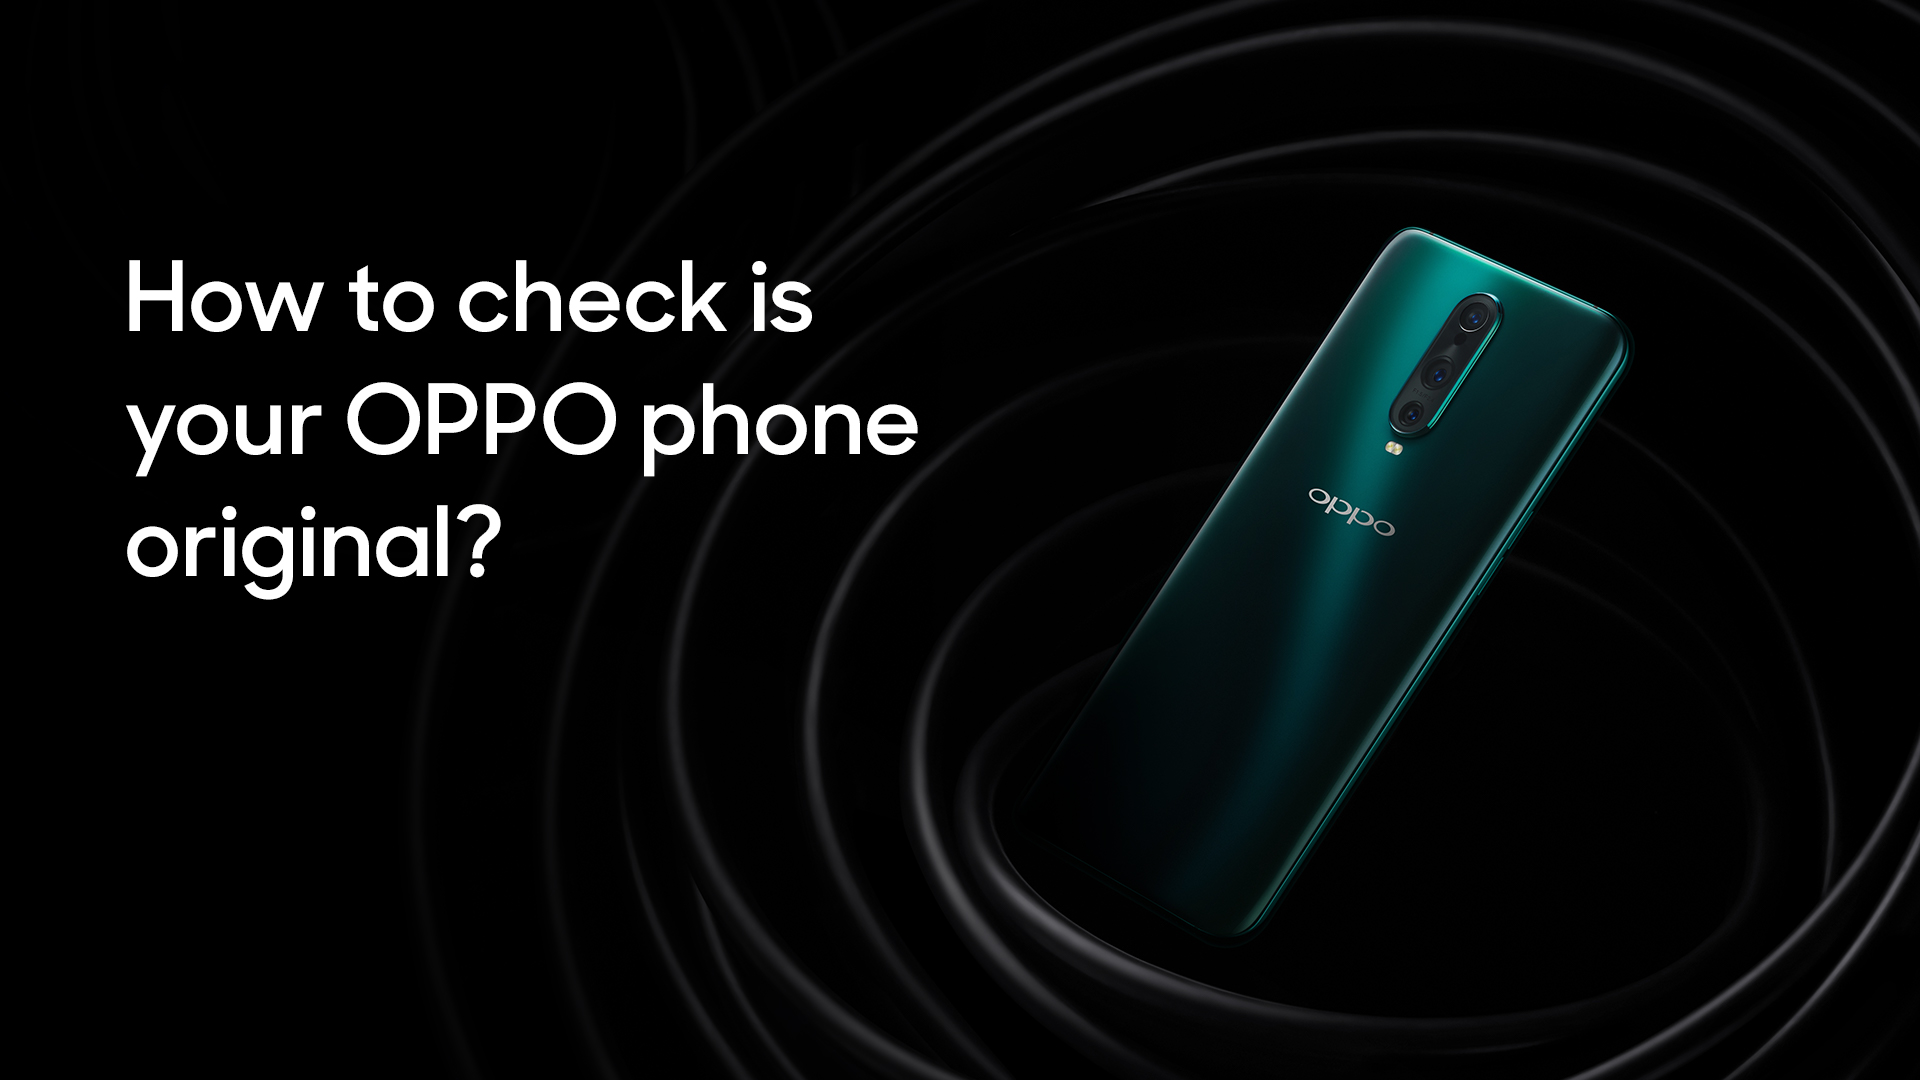 How Do I Know My OPPO Phone Is Original? | OPPO Australia | OPPO